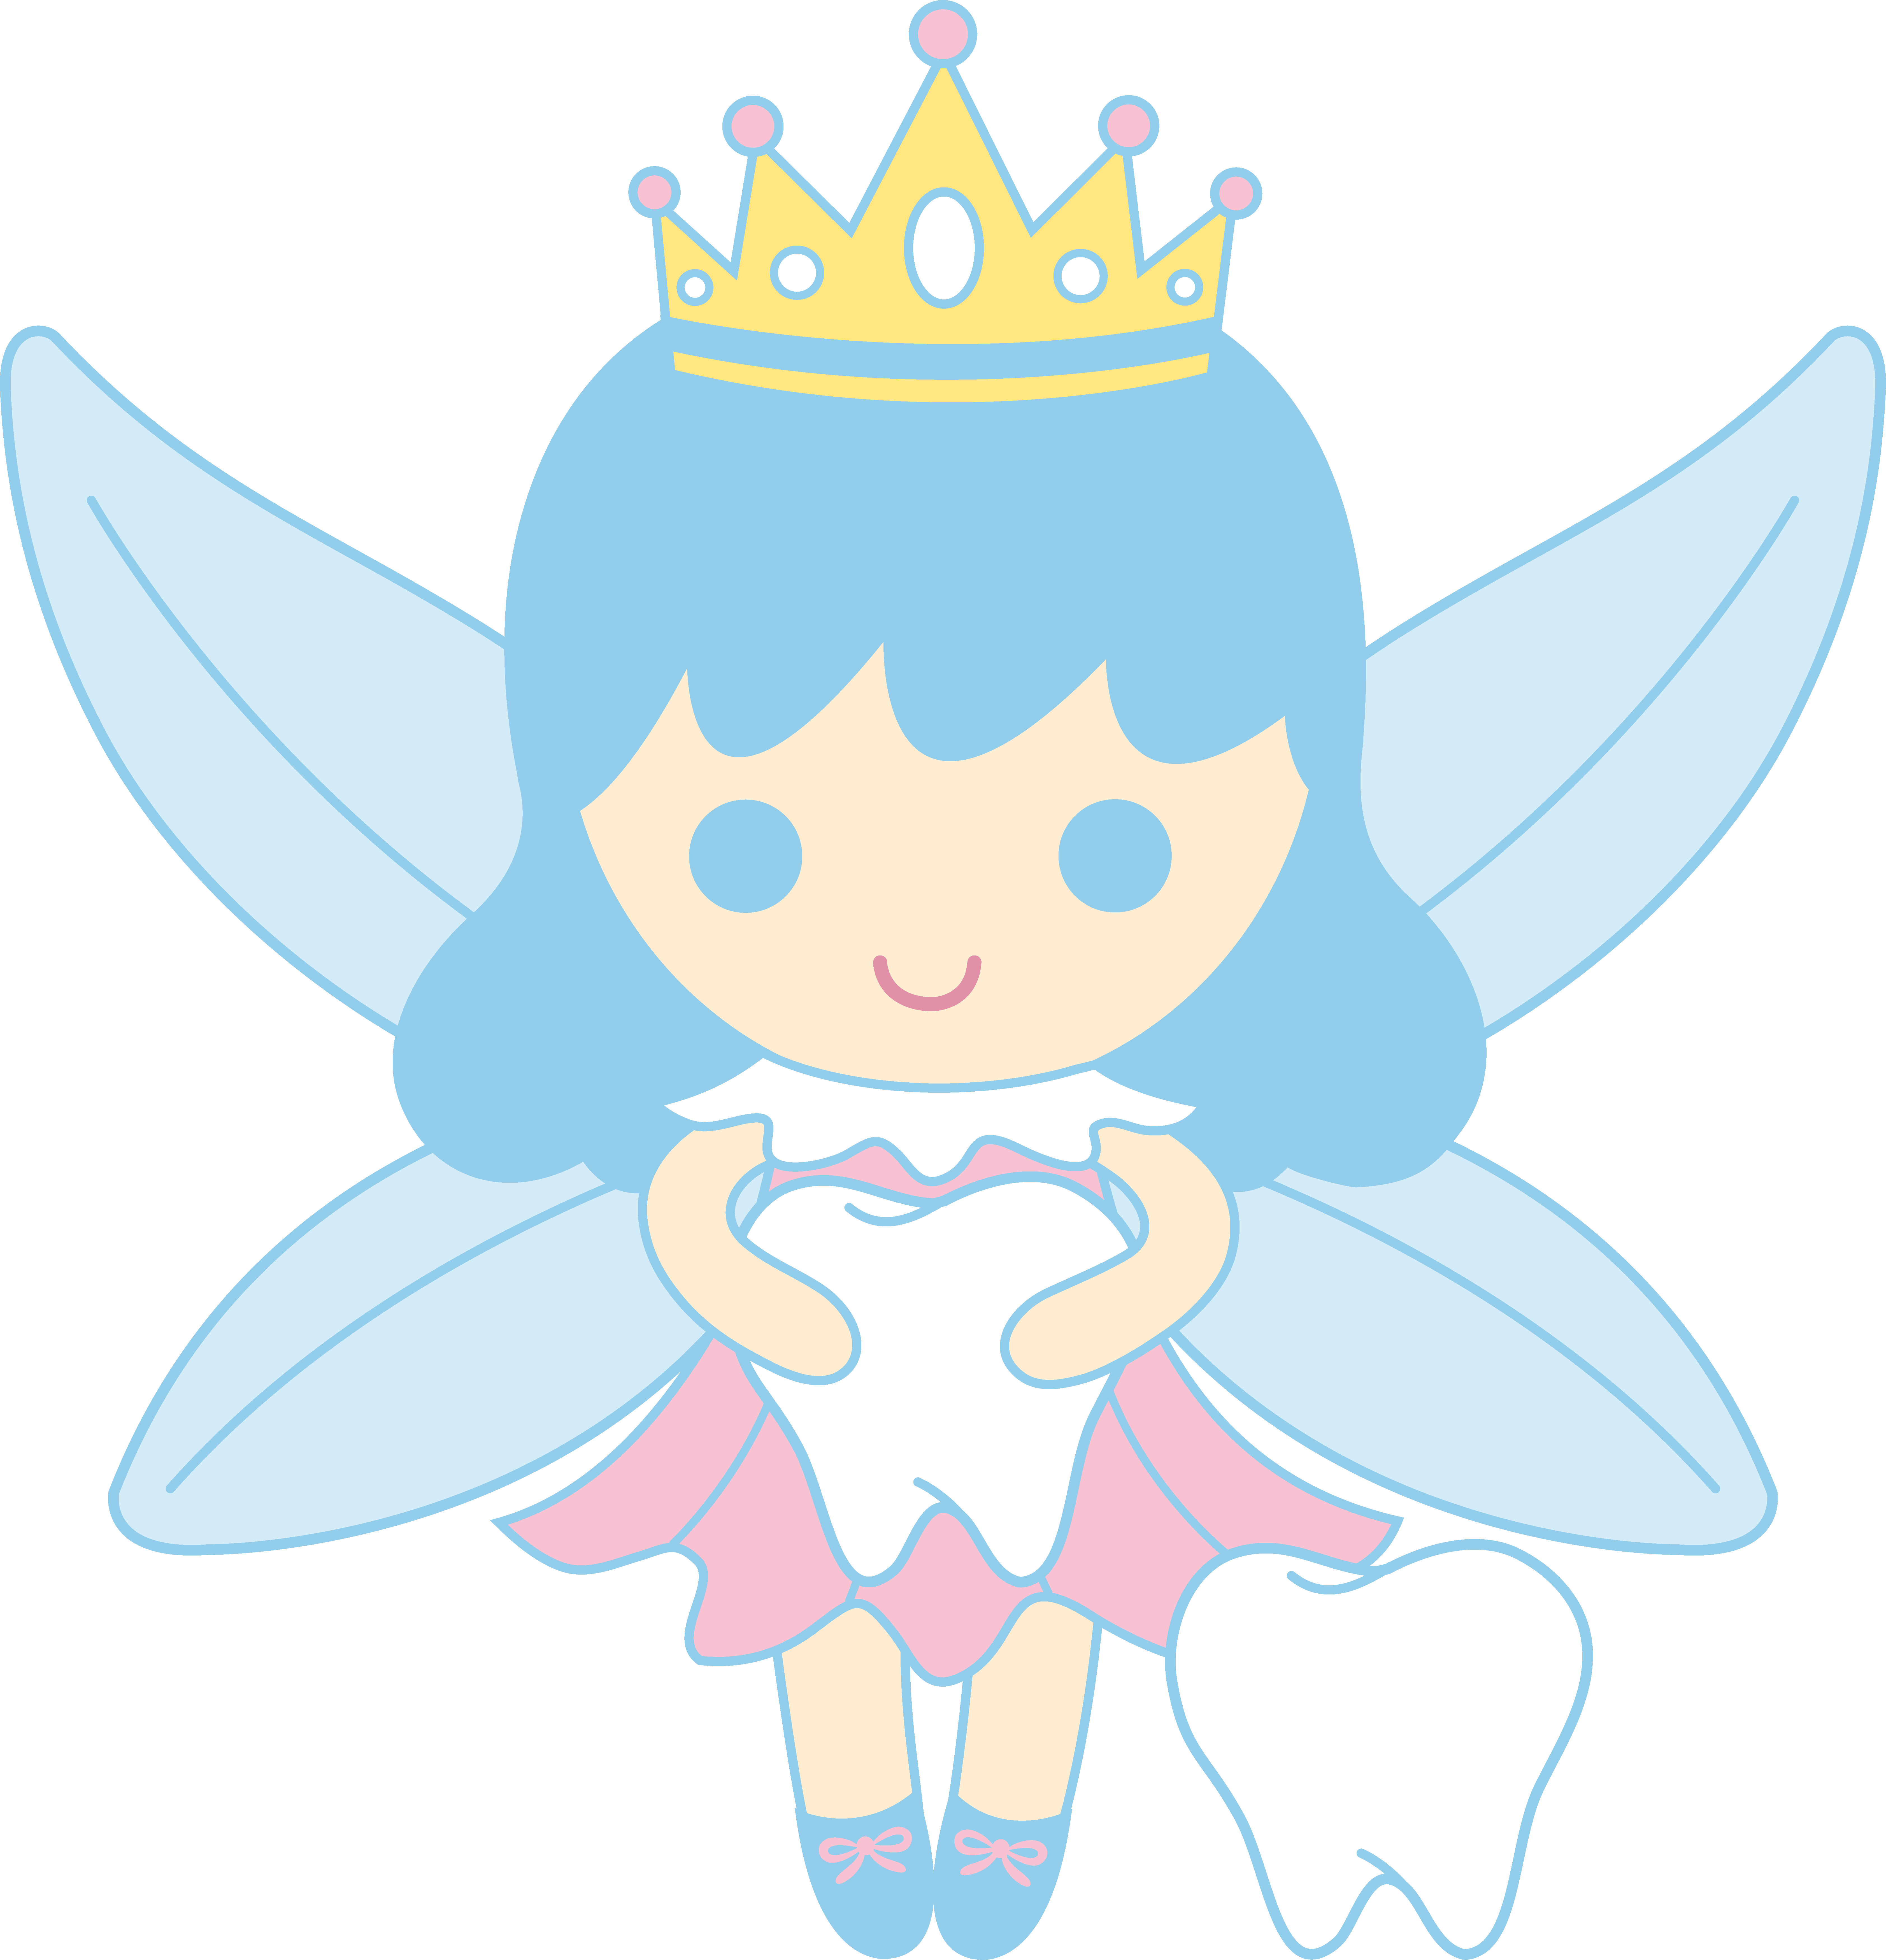 Cute tooth fairy clipart image royalty free stock Cute Tooth Fairy Collecting Teeth - Free Clip Art image royalty free stock